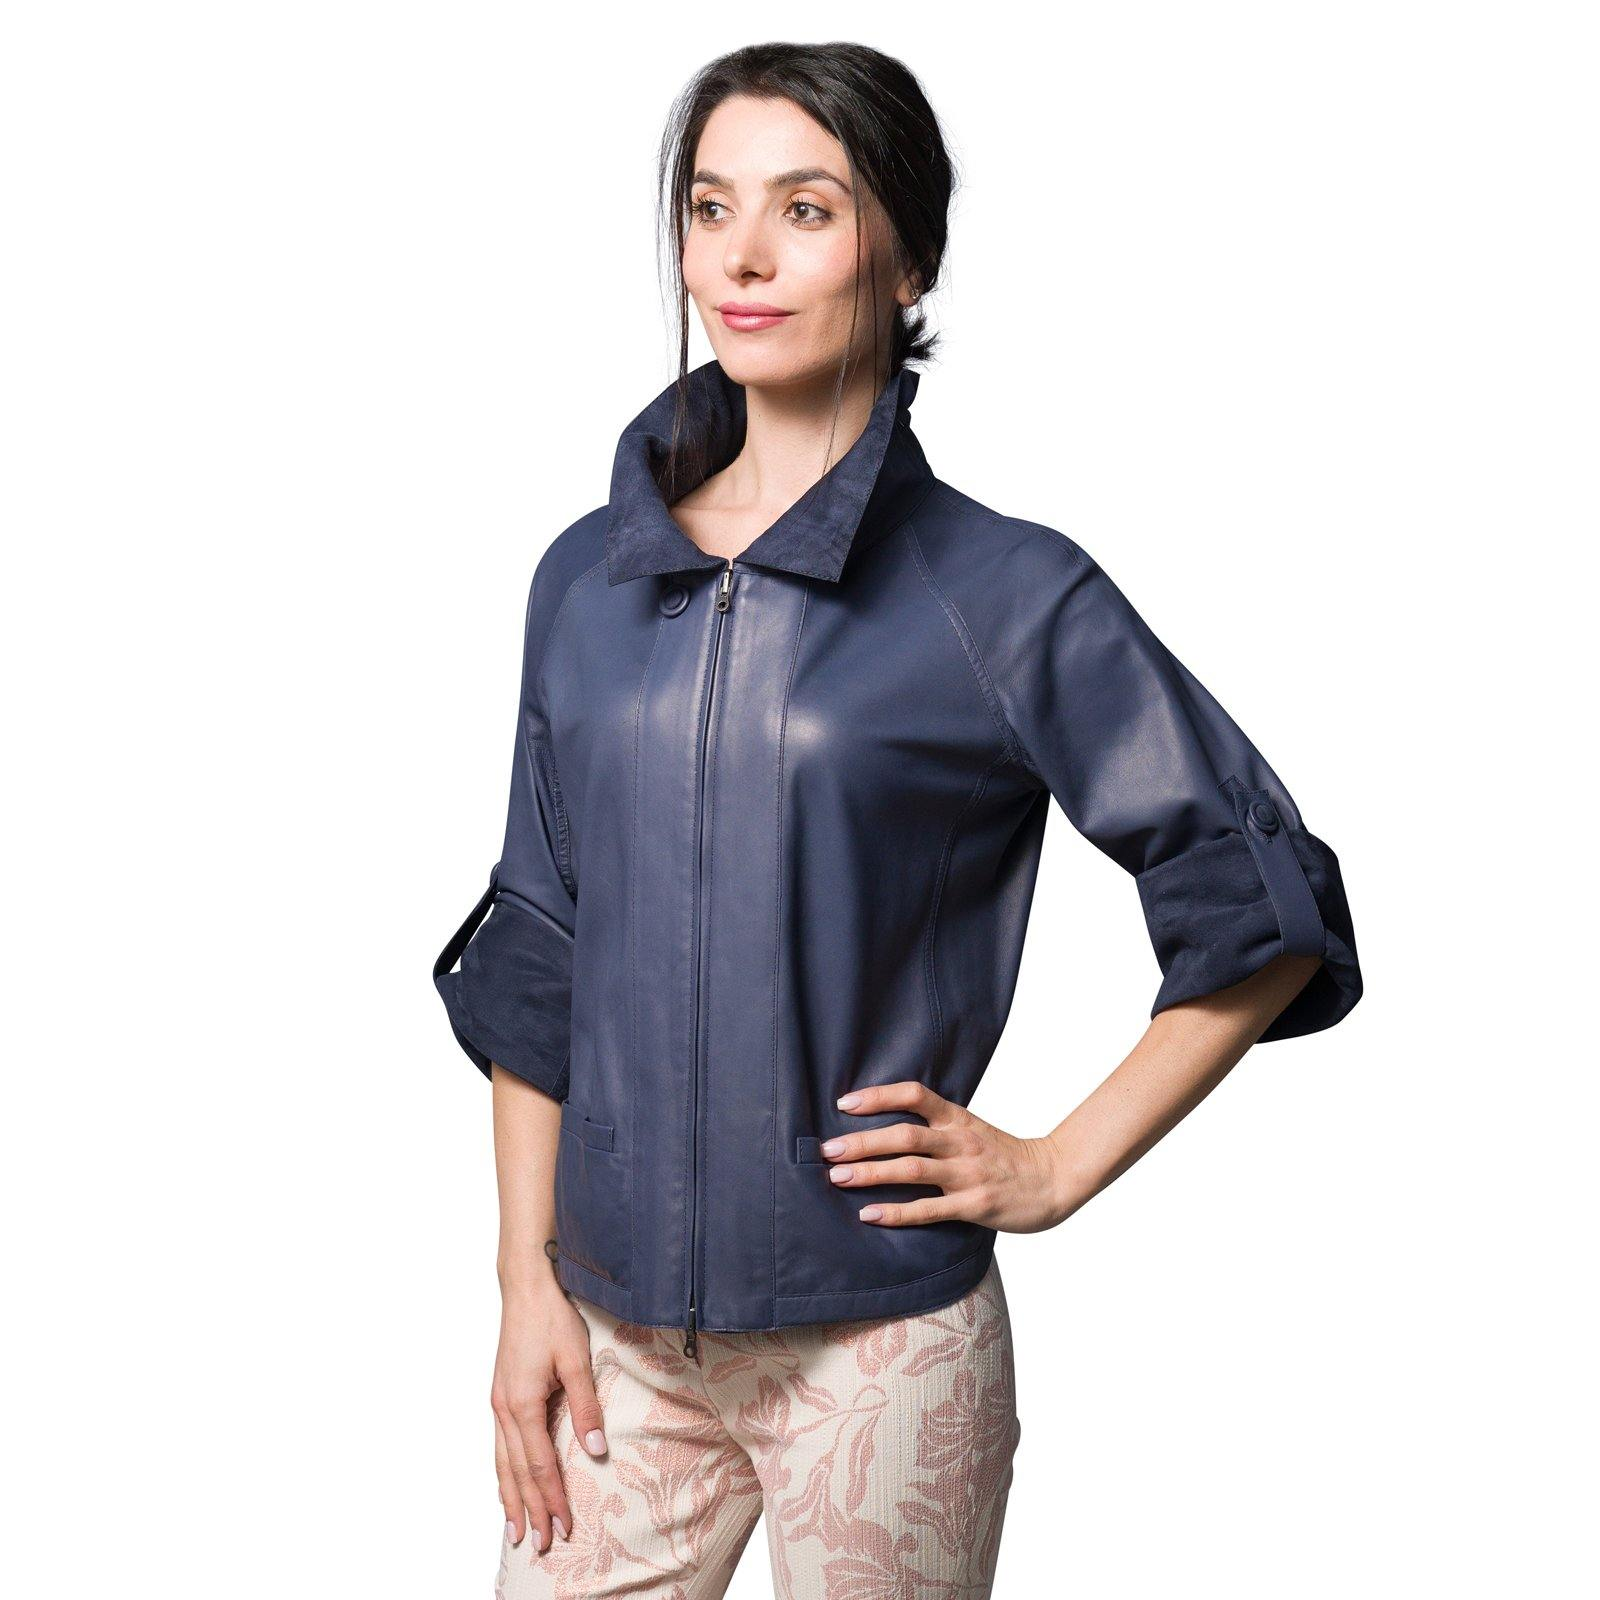 Audrey Reversible Pieno Fiore Leather Jacket in Carta da Zucchero